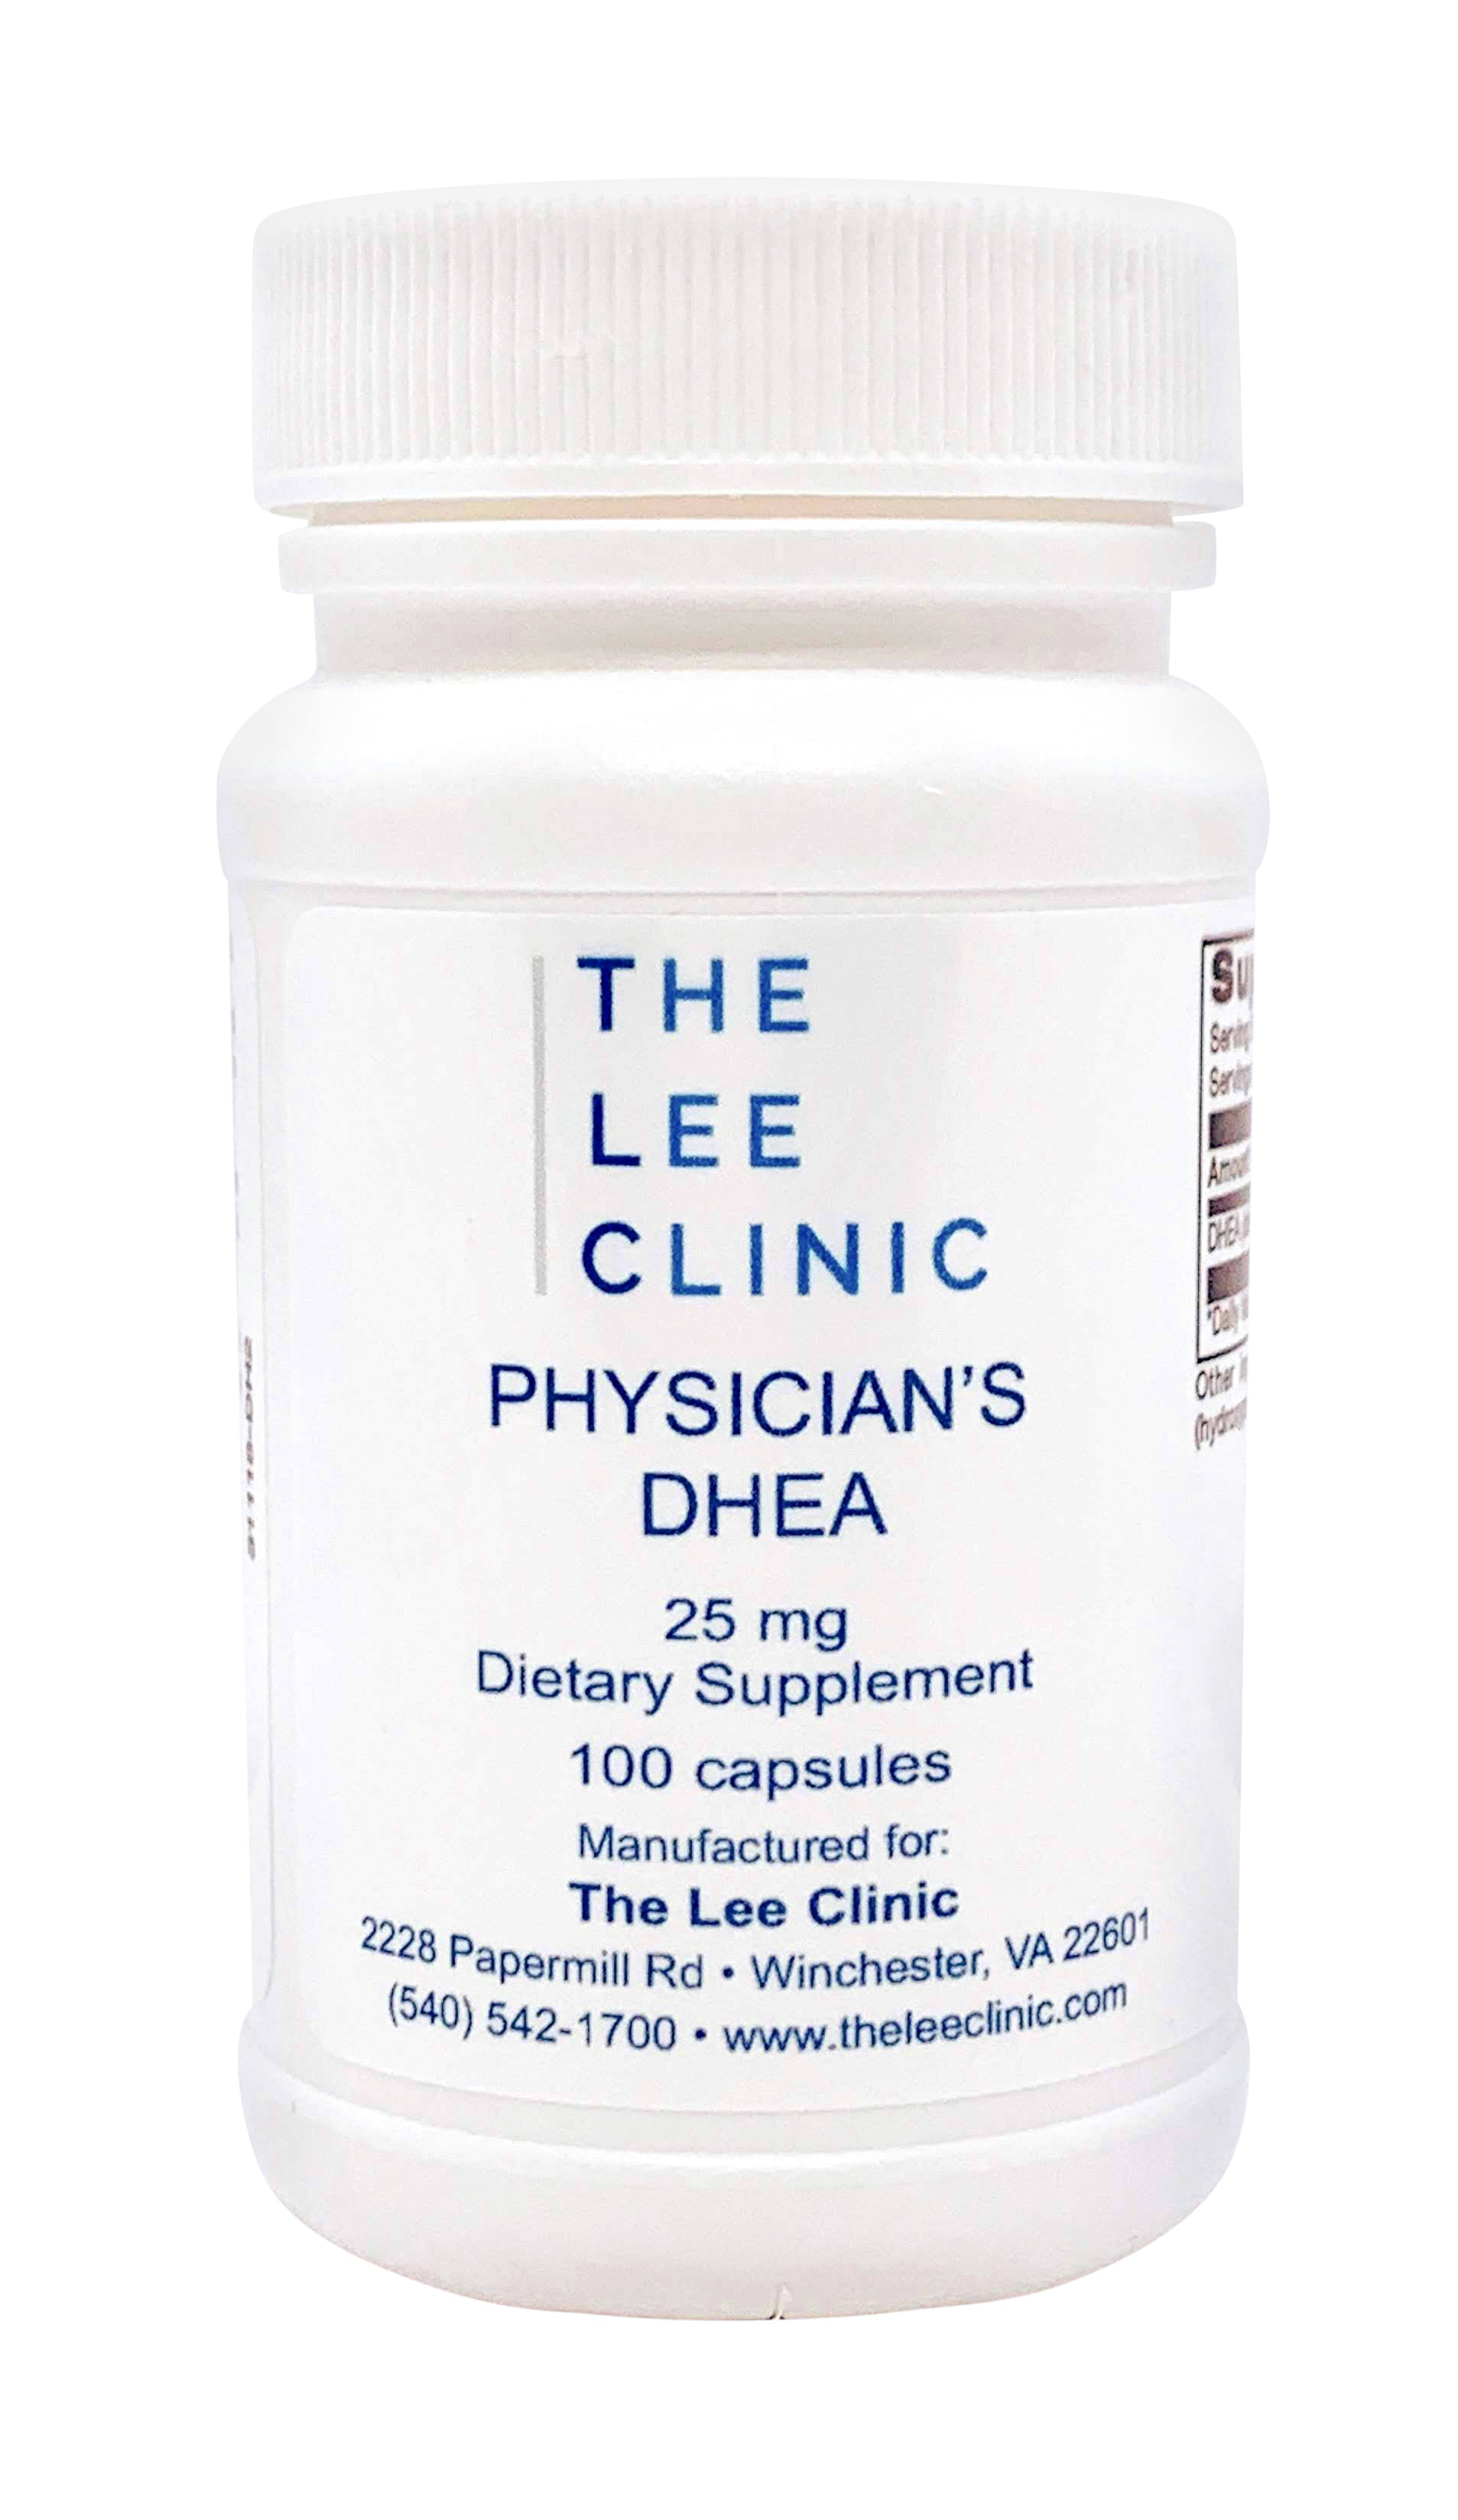 TLC Physician's DHEA 25mg